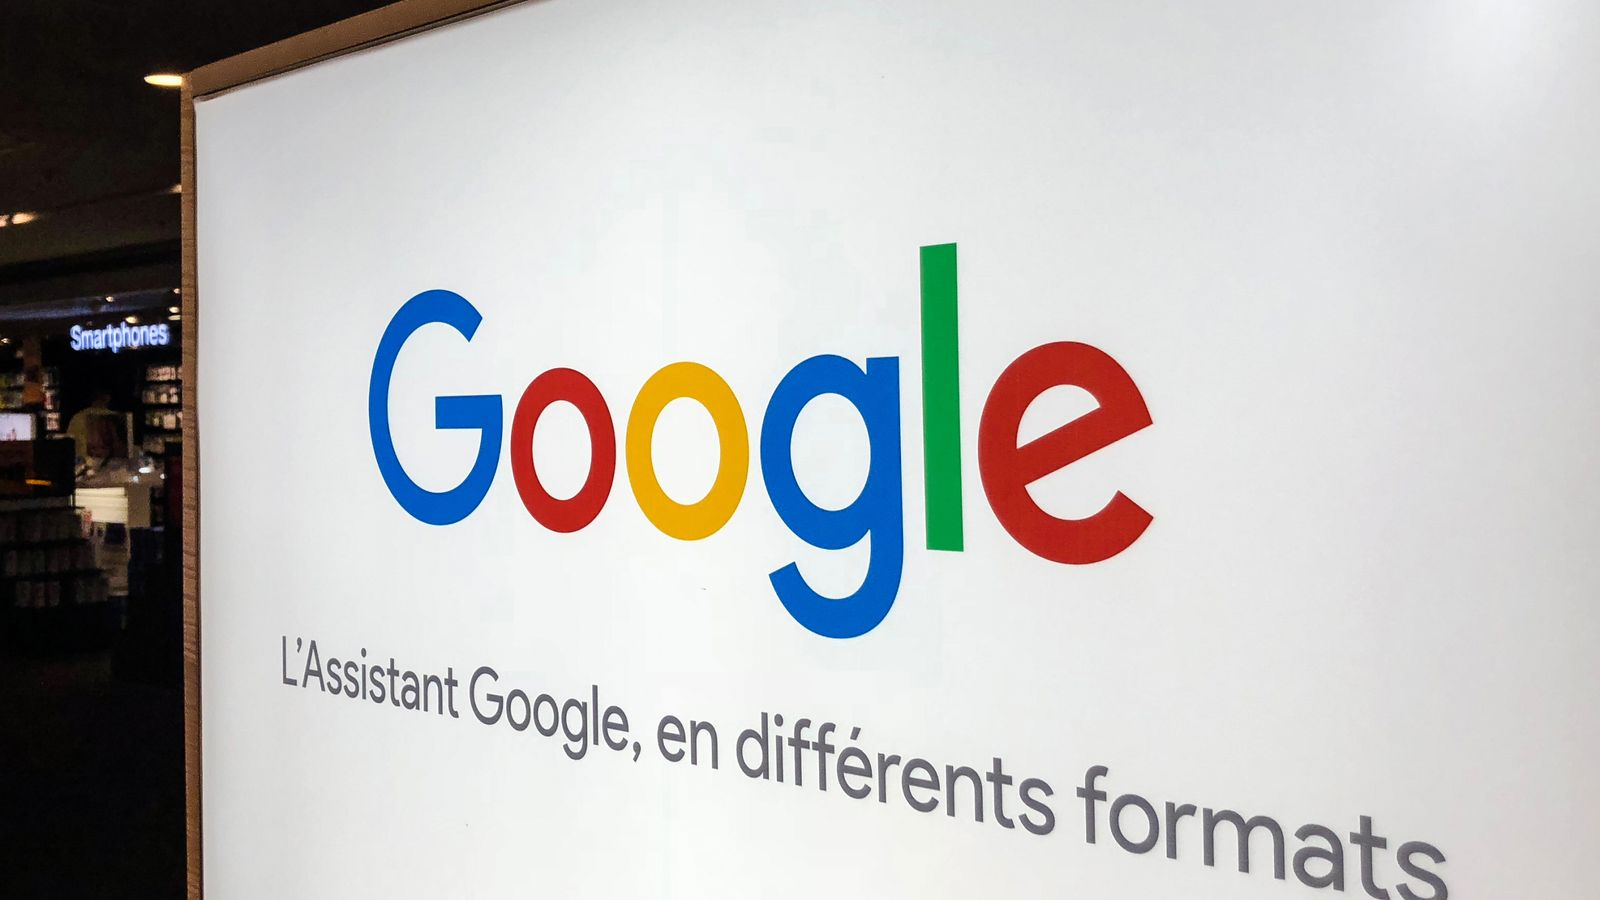 France aims to control Google content globally